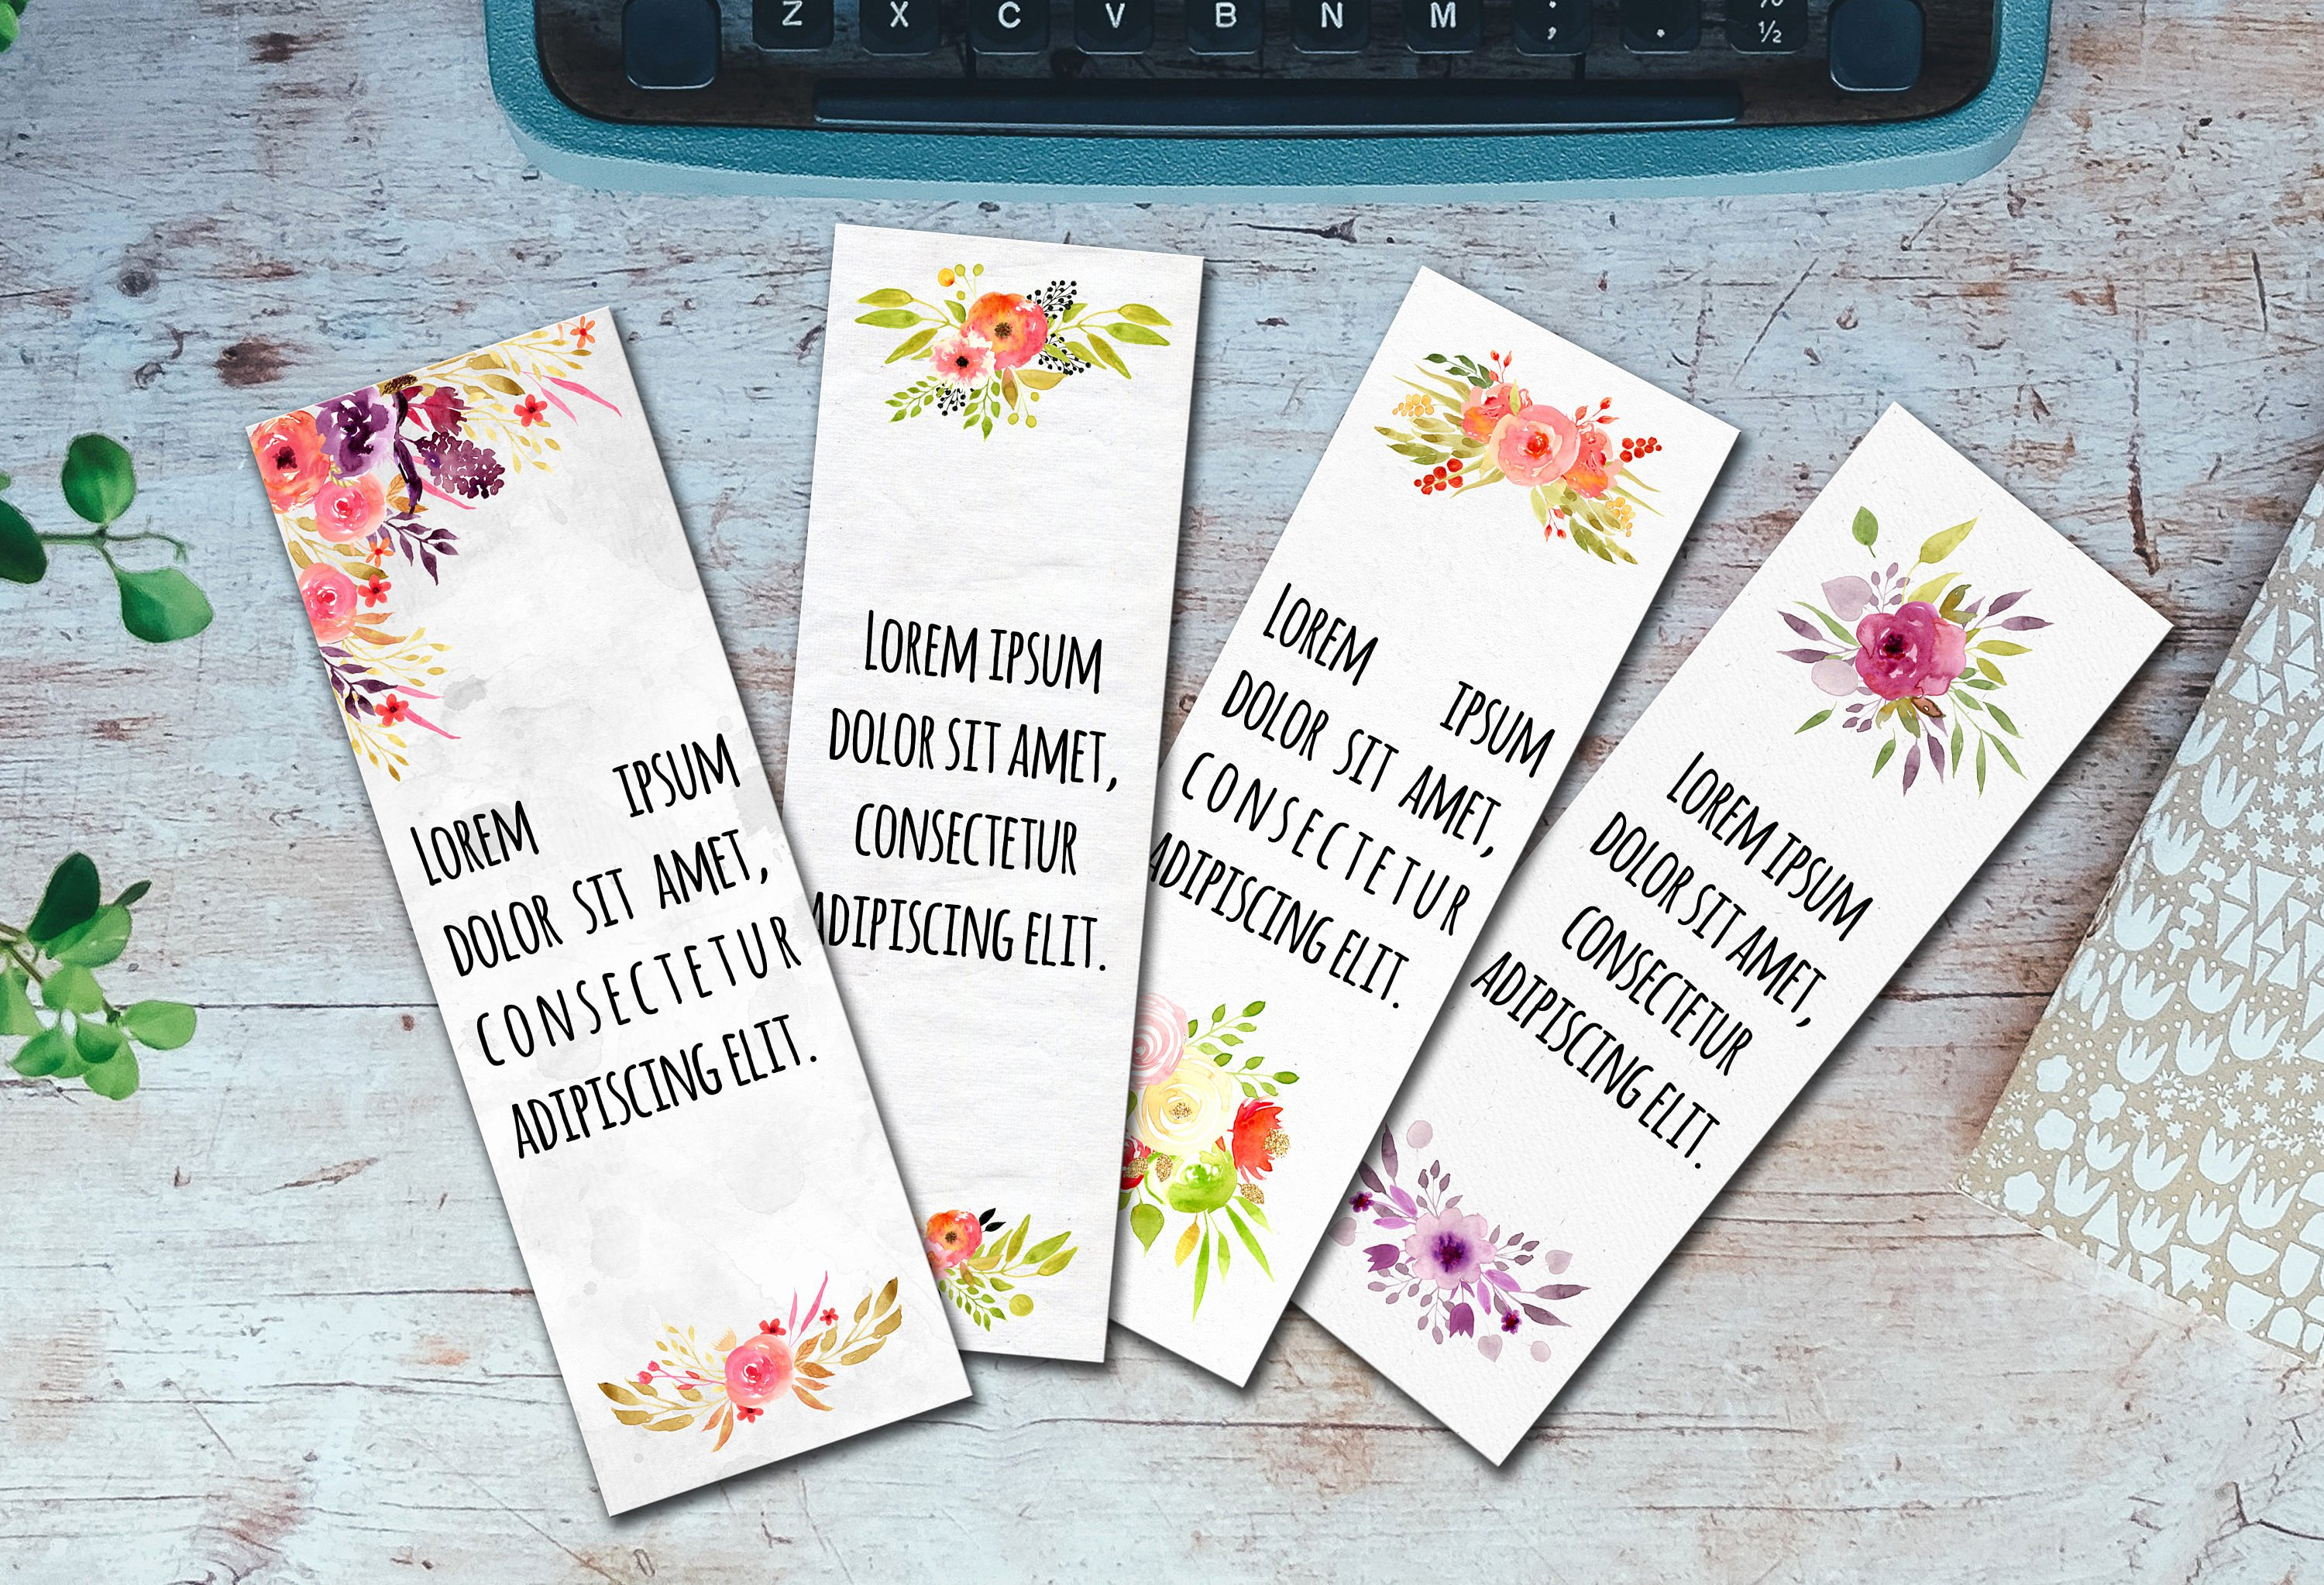 Bookmark Template for Word Awesome Editable Bookmarks Template Word Bookmarks Template Editable